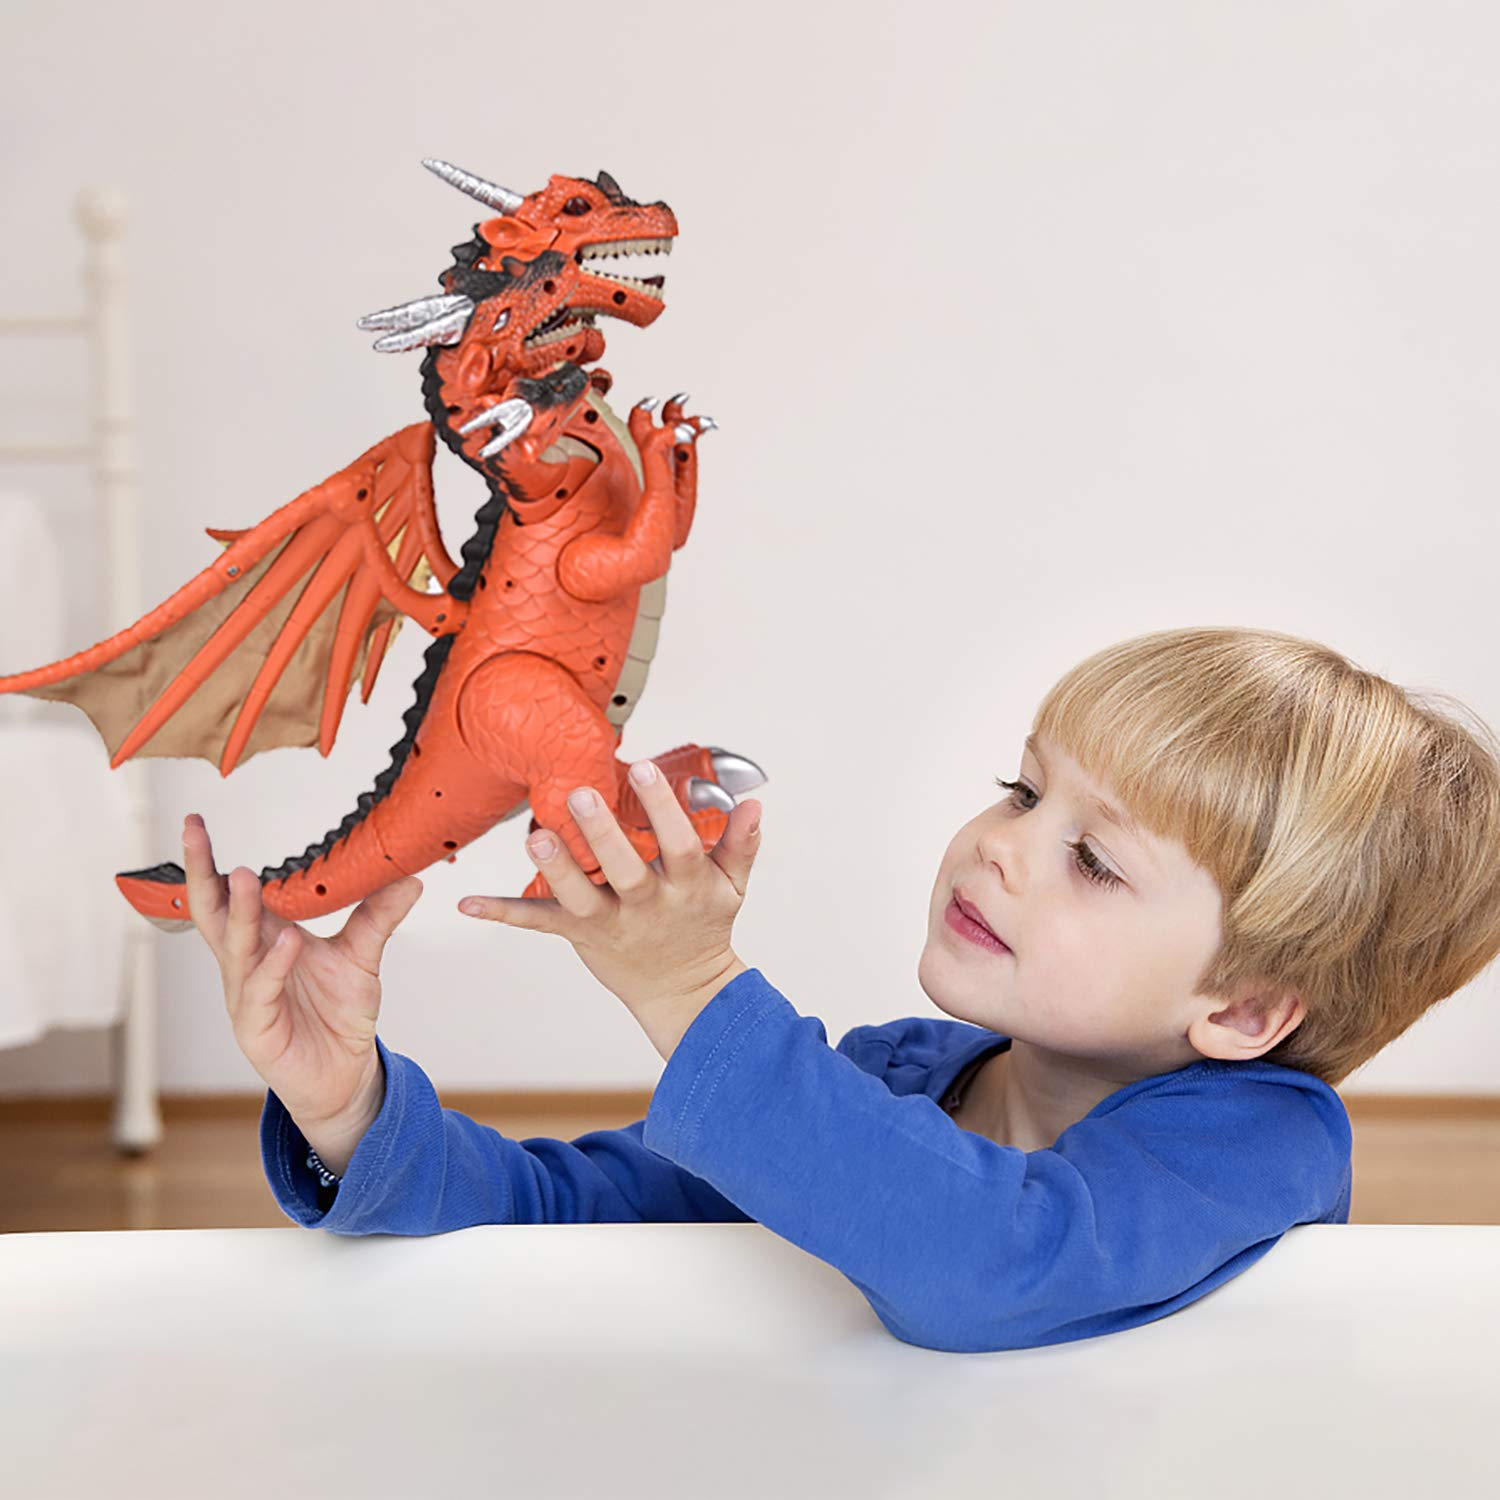 Dragon Toys for Boys, Seven Heads Walking Dragon 11.8''(L)×11.4''(H) Large Size with Lights and Sounds by FUN LITTLE TOYS (Image #4)